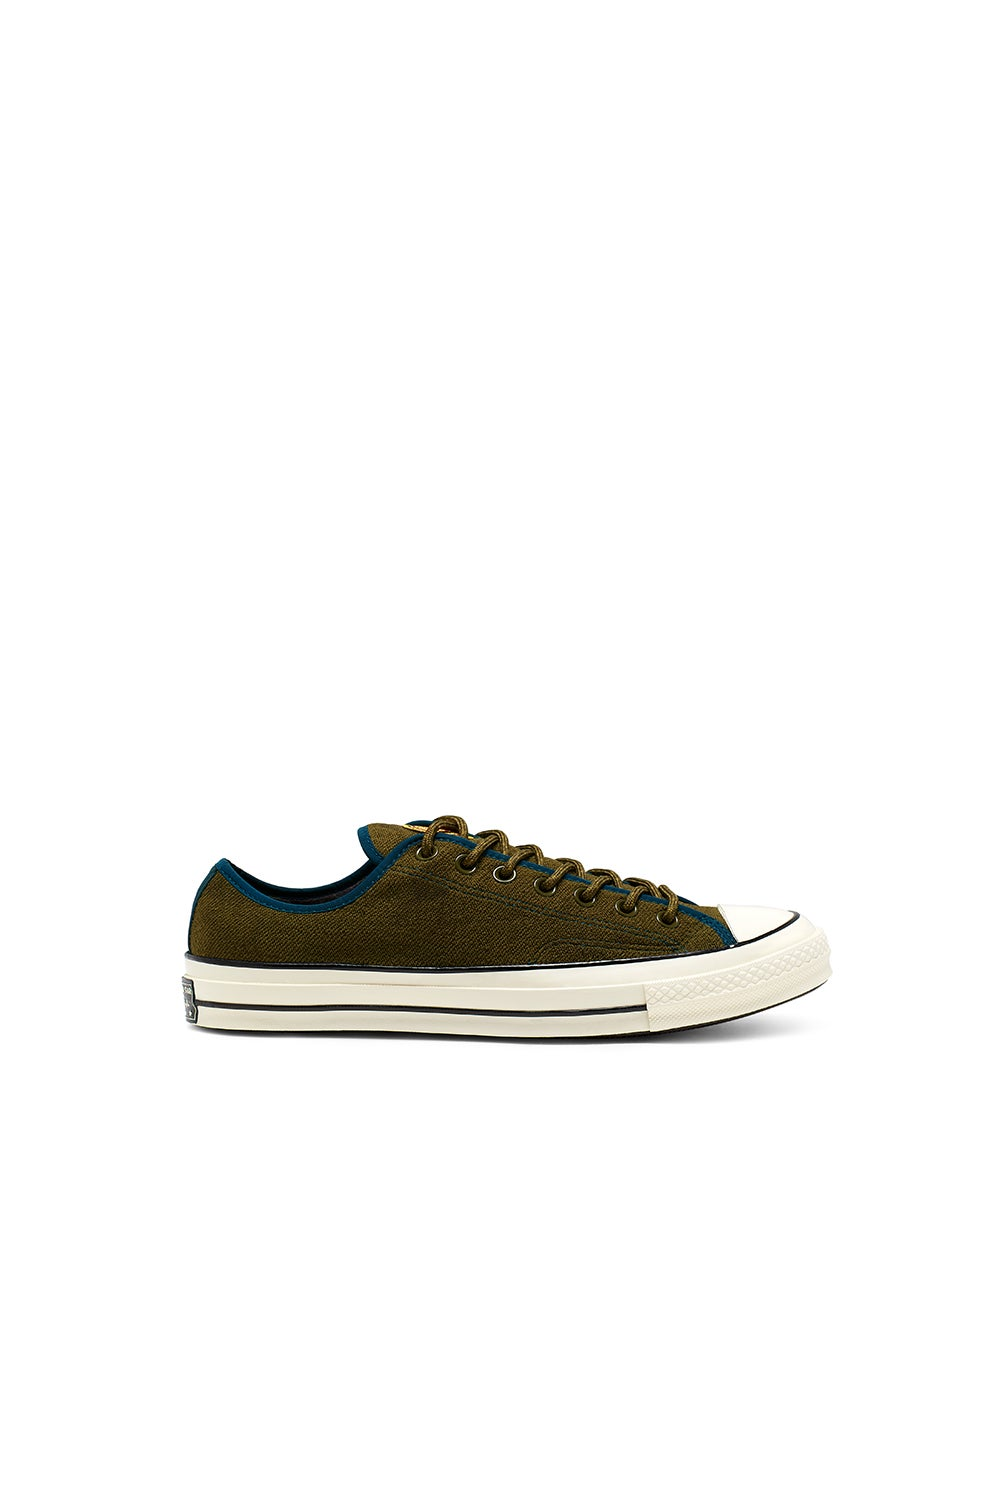 Converse Chuck 70 Low Top Archival Terry Surplus Olive